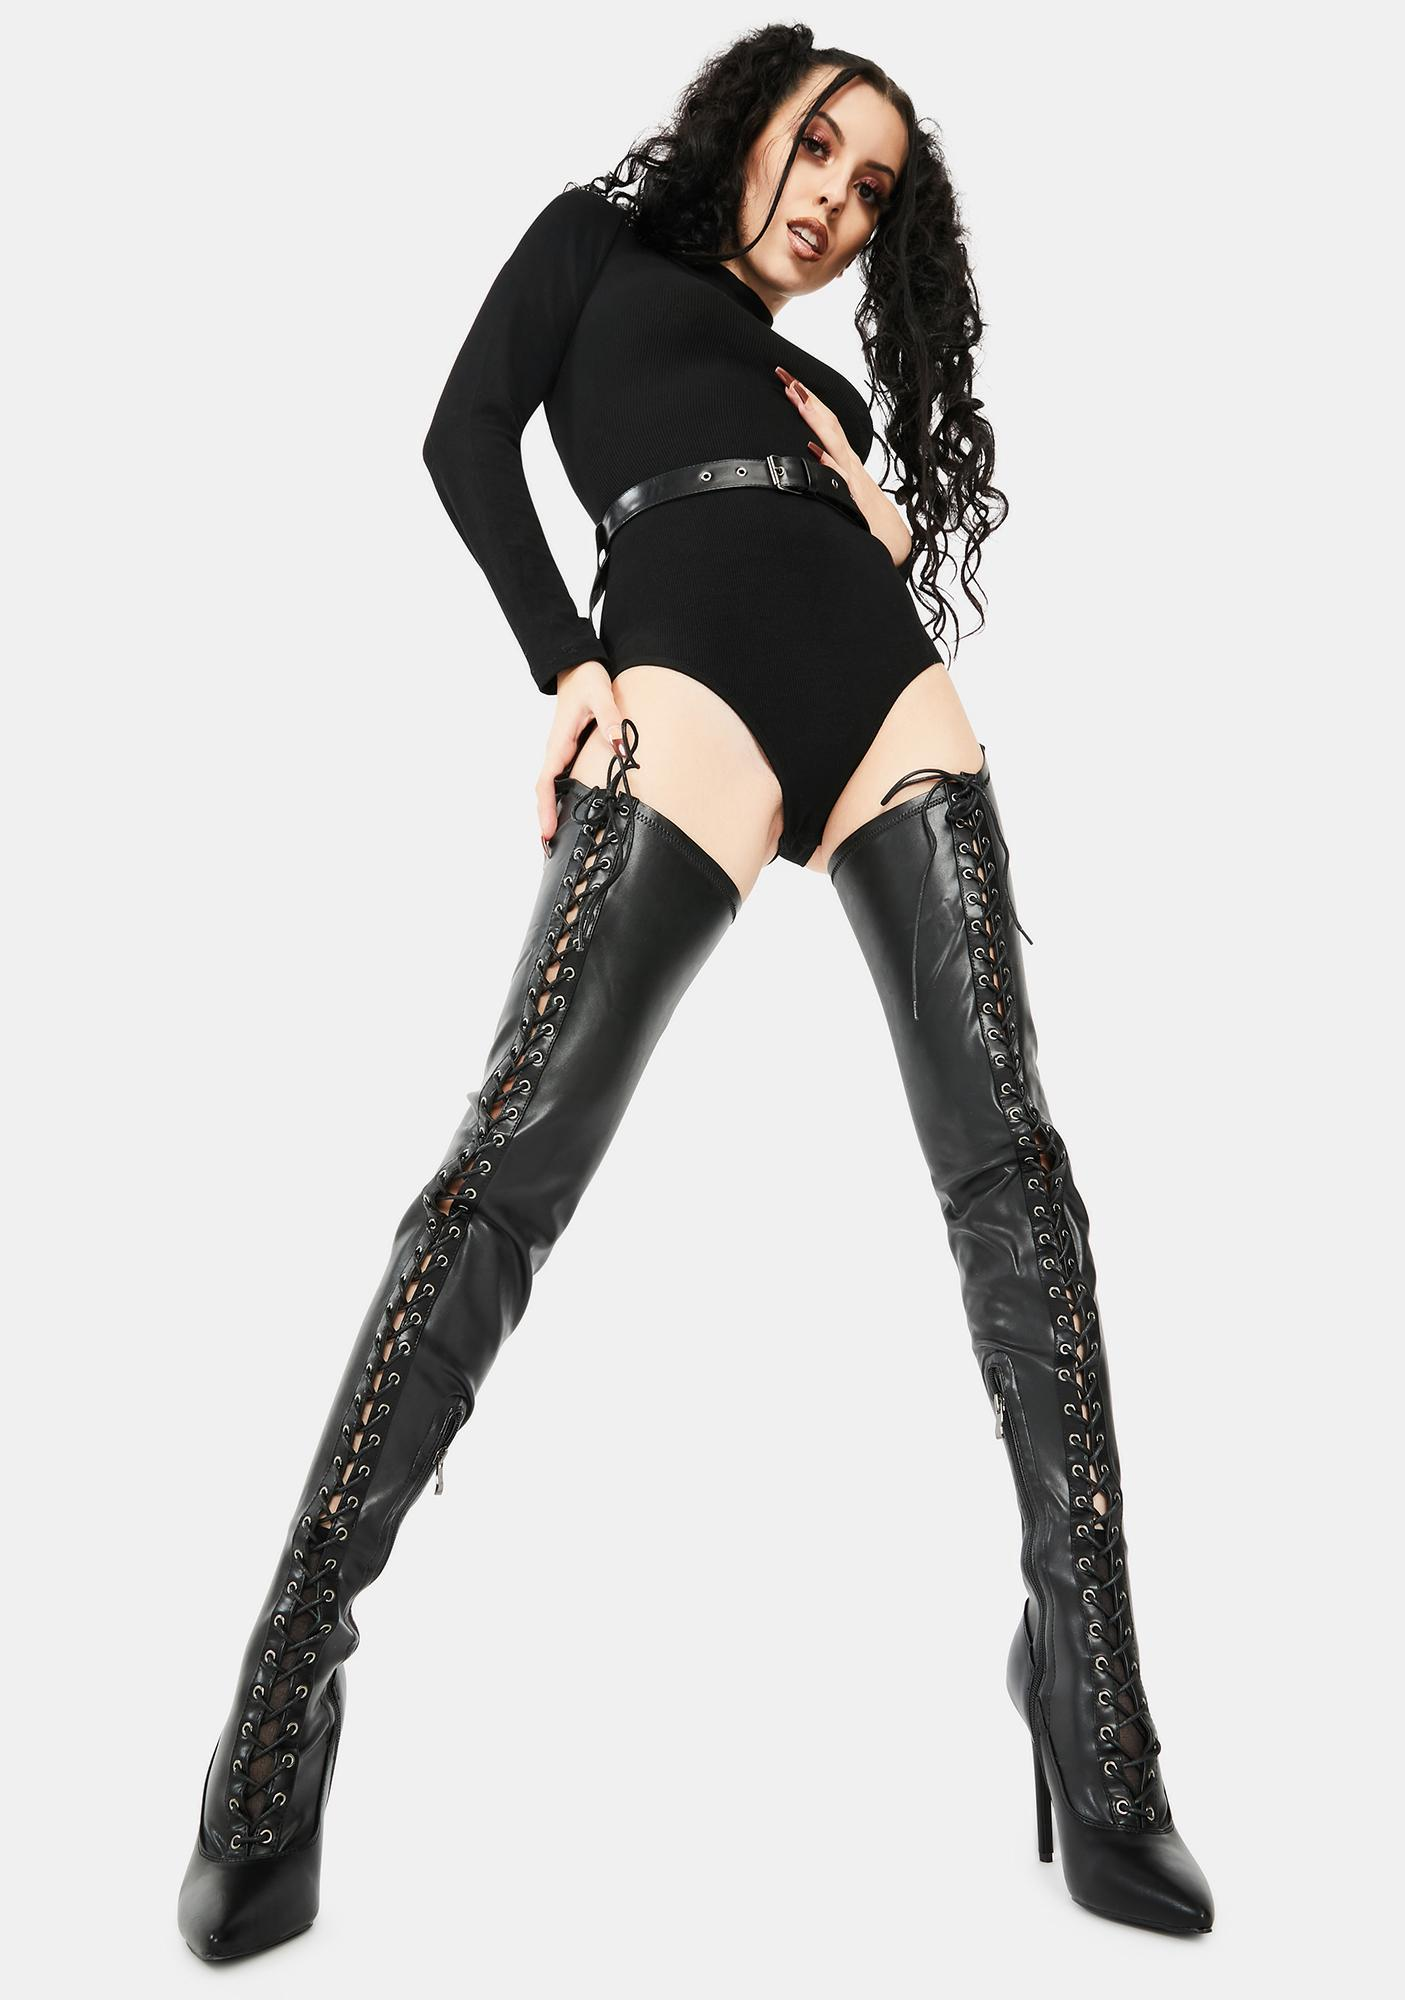 AZALEA WANG Shower You With My Attention Stiletto Boots